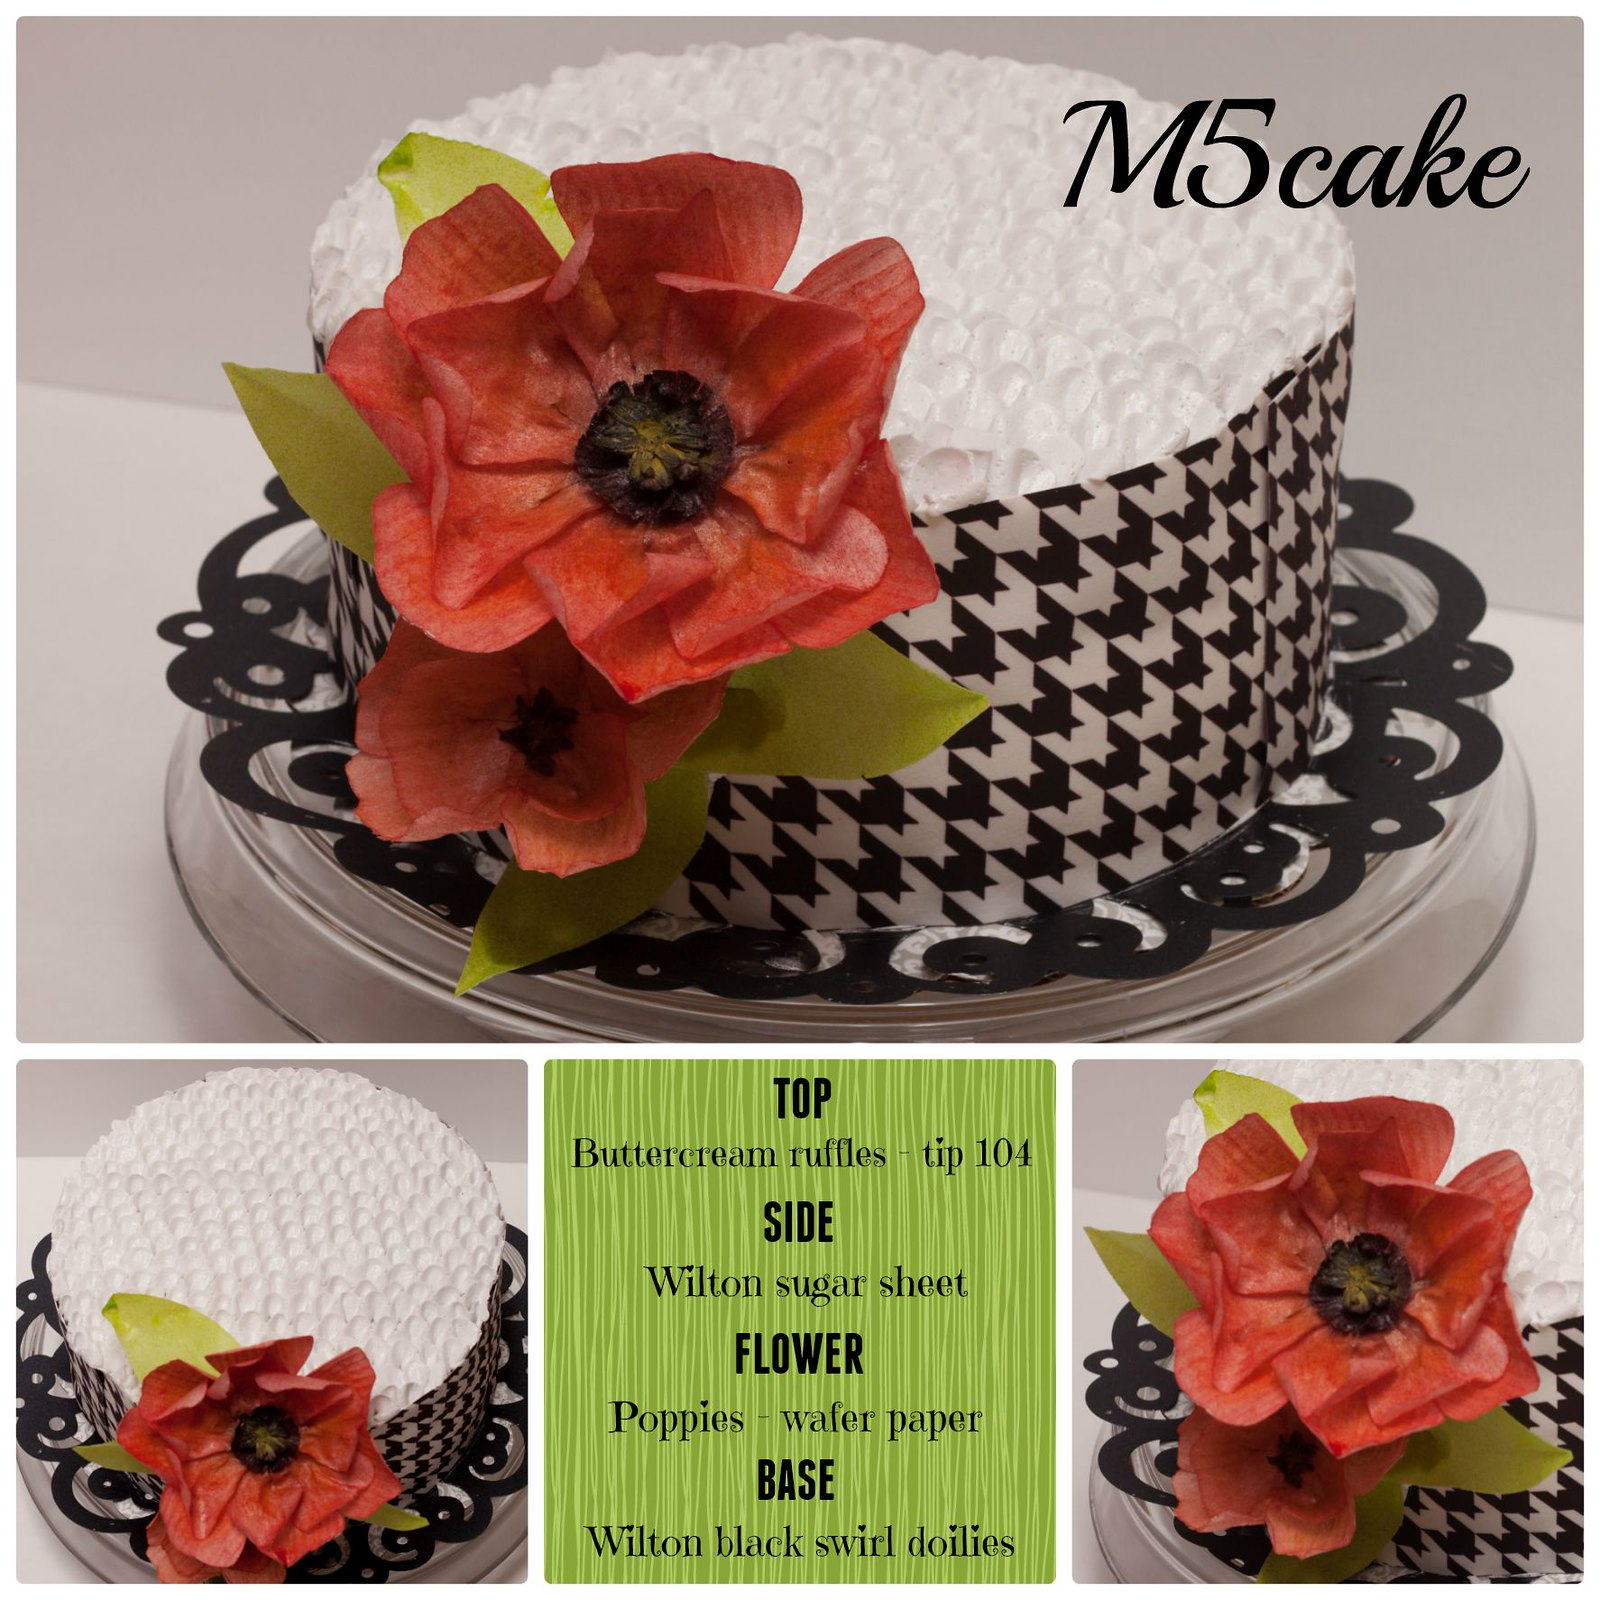 m5cake poppies and raffles